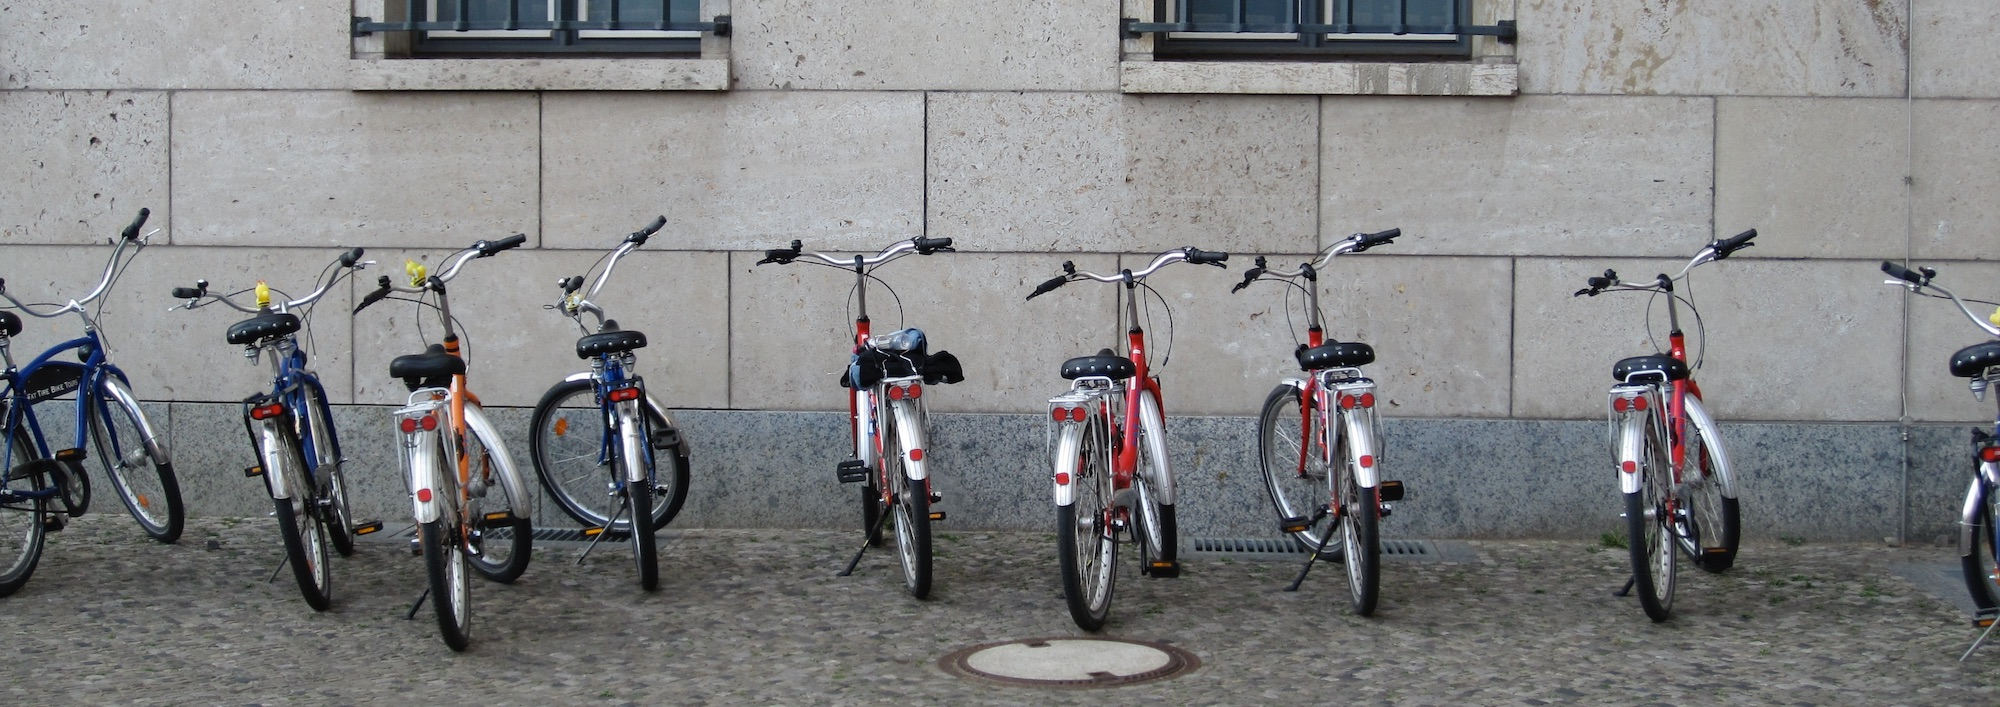 bikes in a row against a building